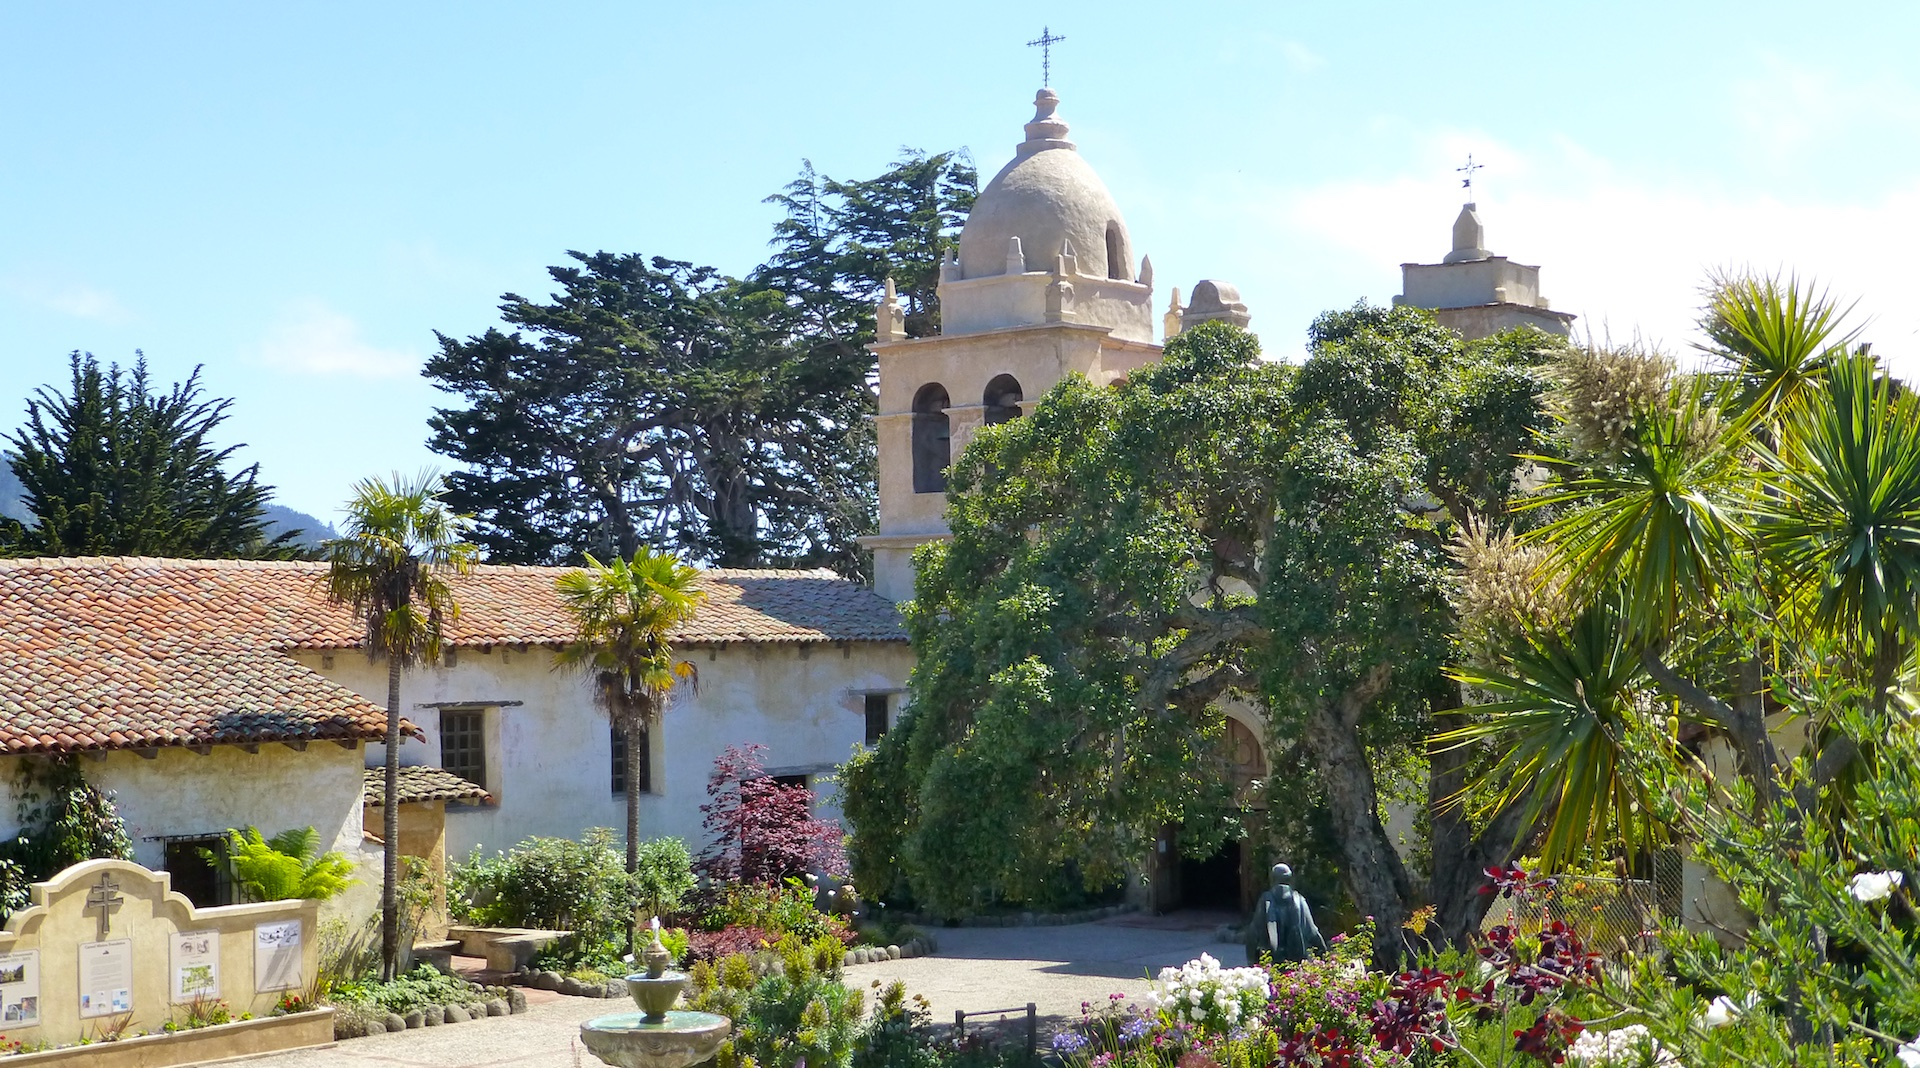 The Carmel Mission, Carmel, California, USA